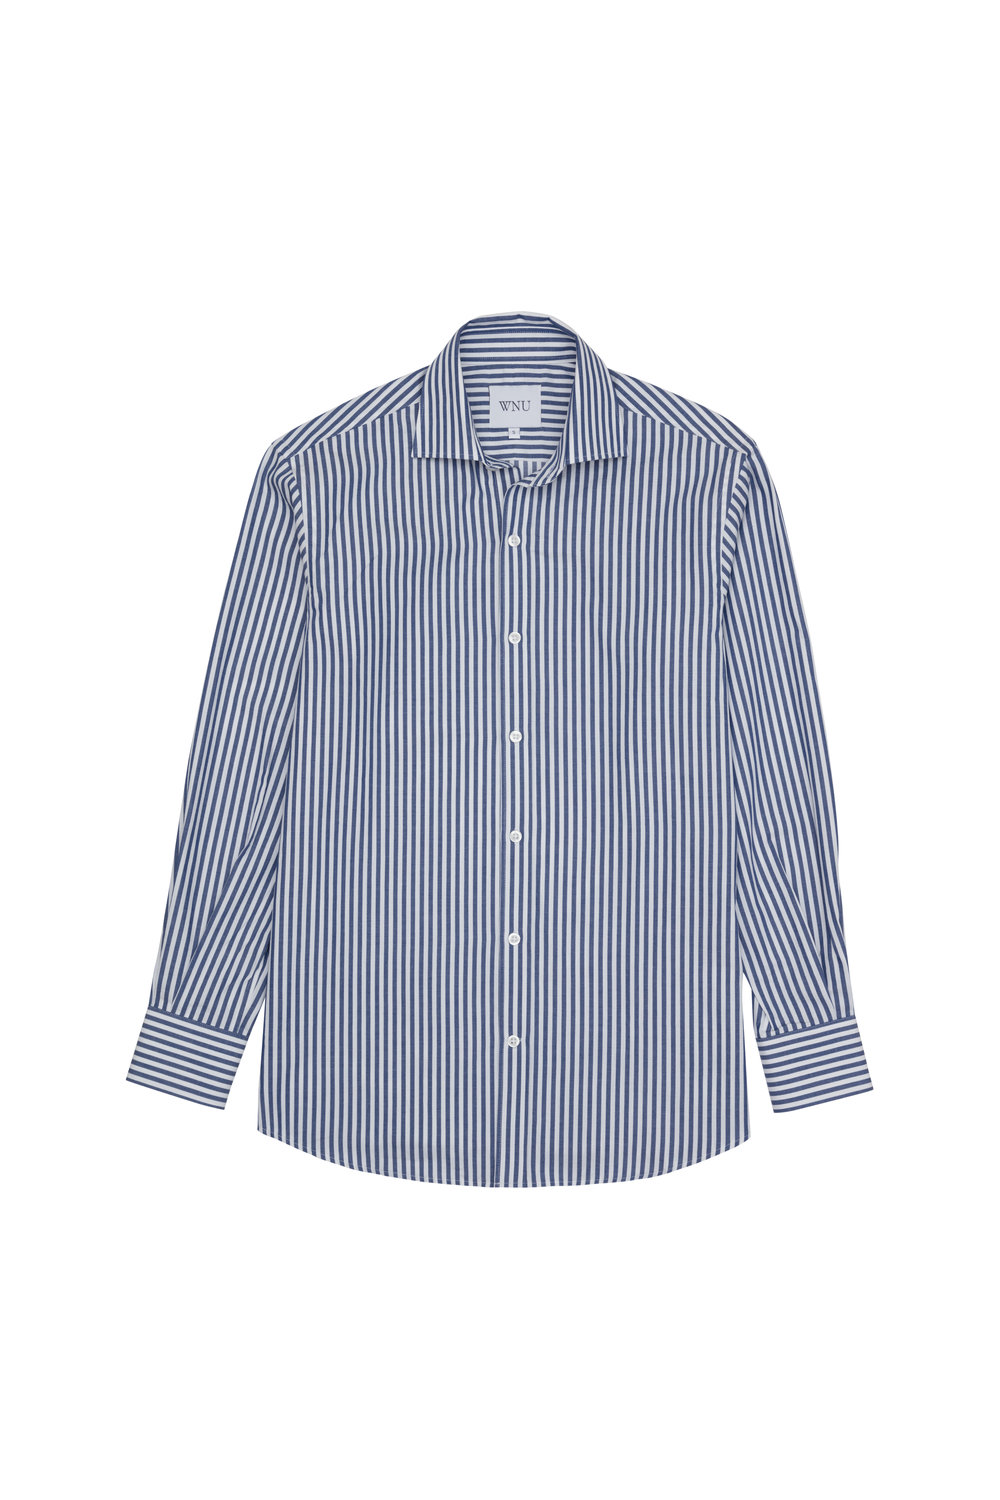 5. Stripe shirt, £80 by With Nothing Underneath